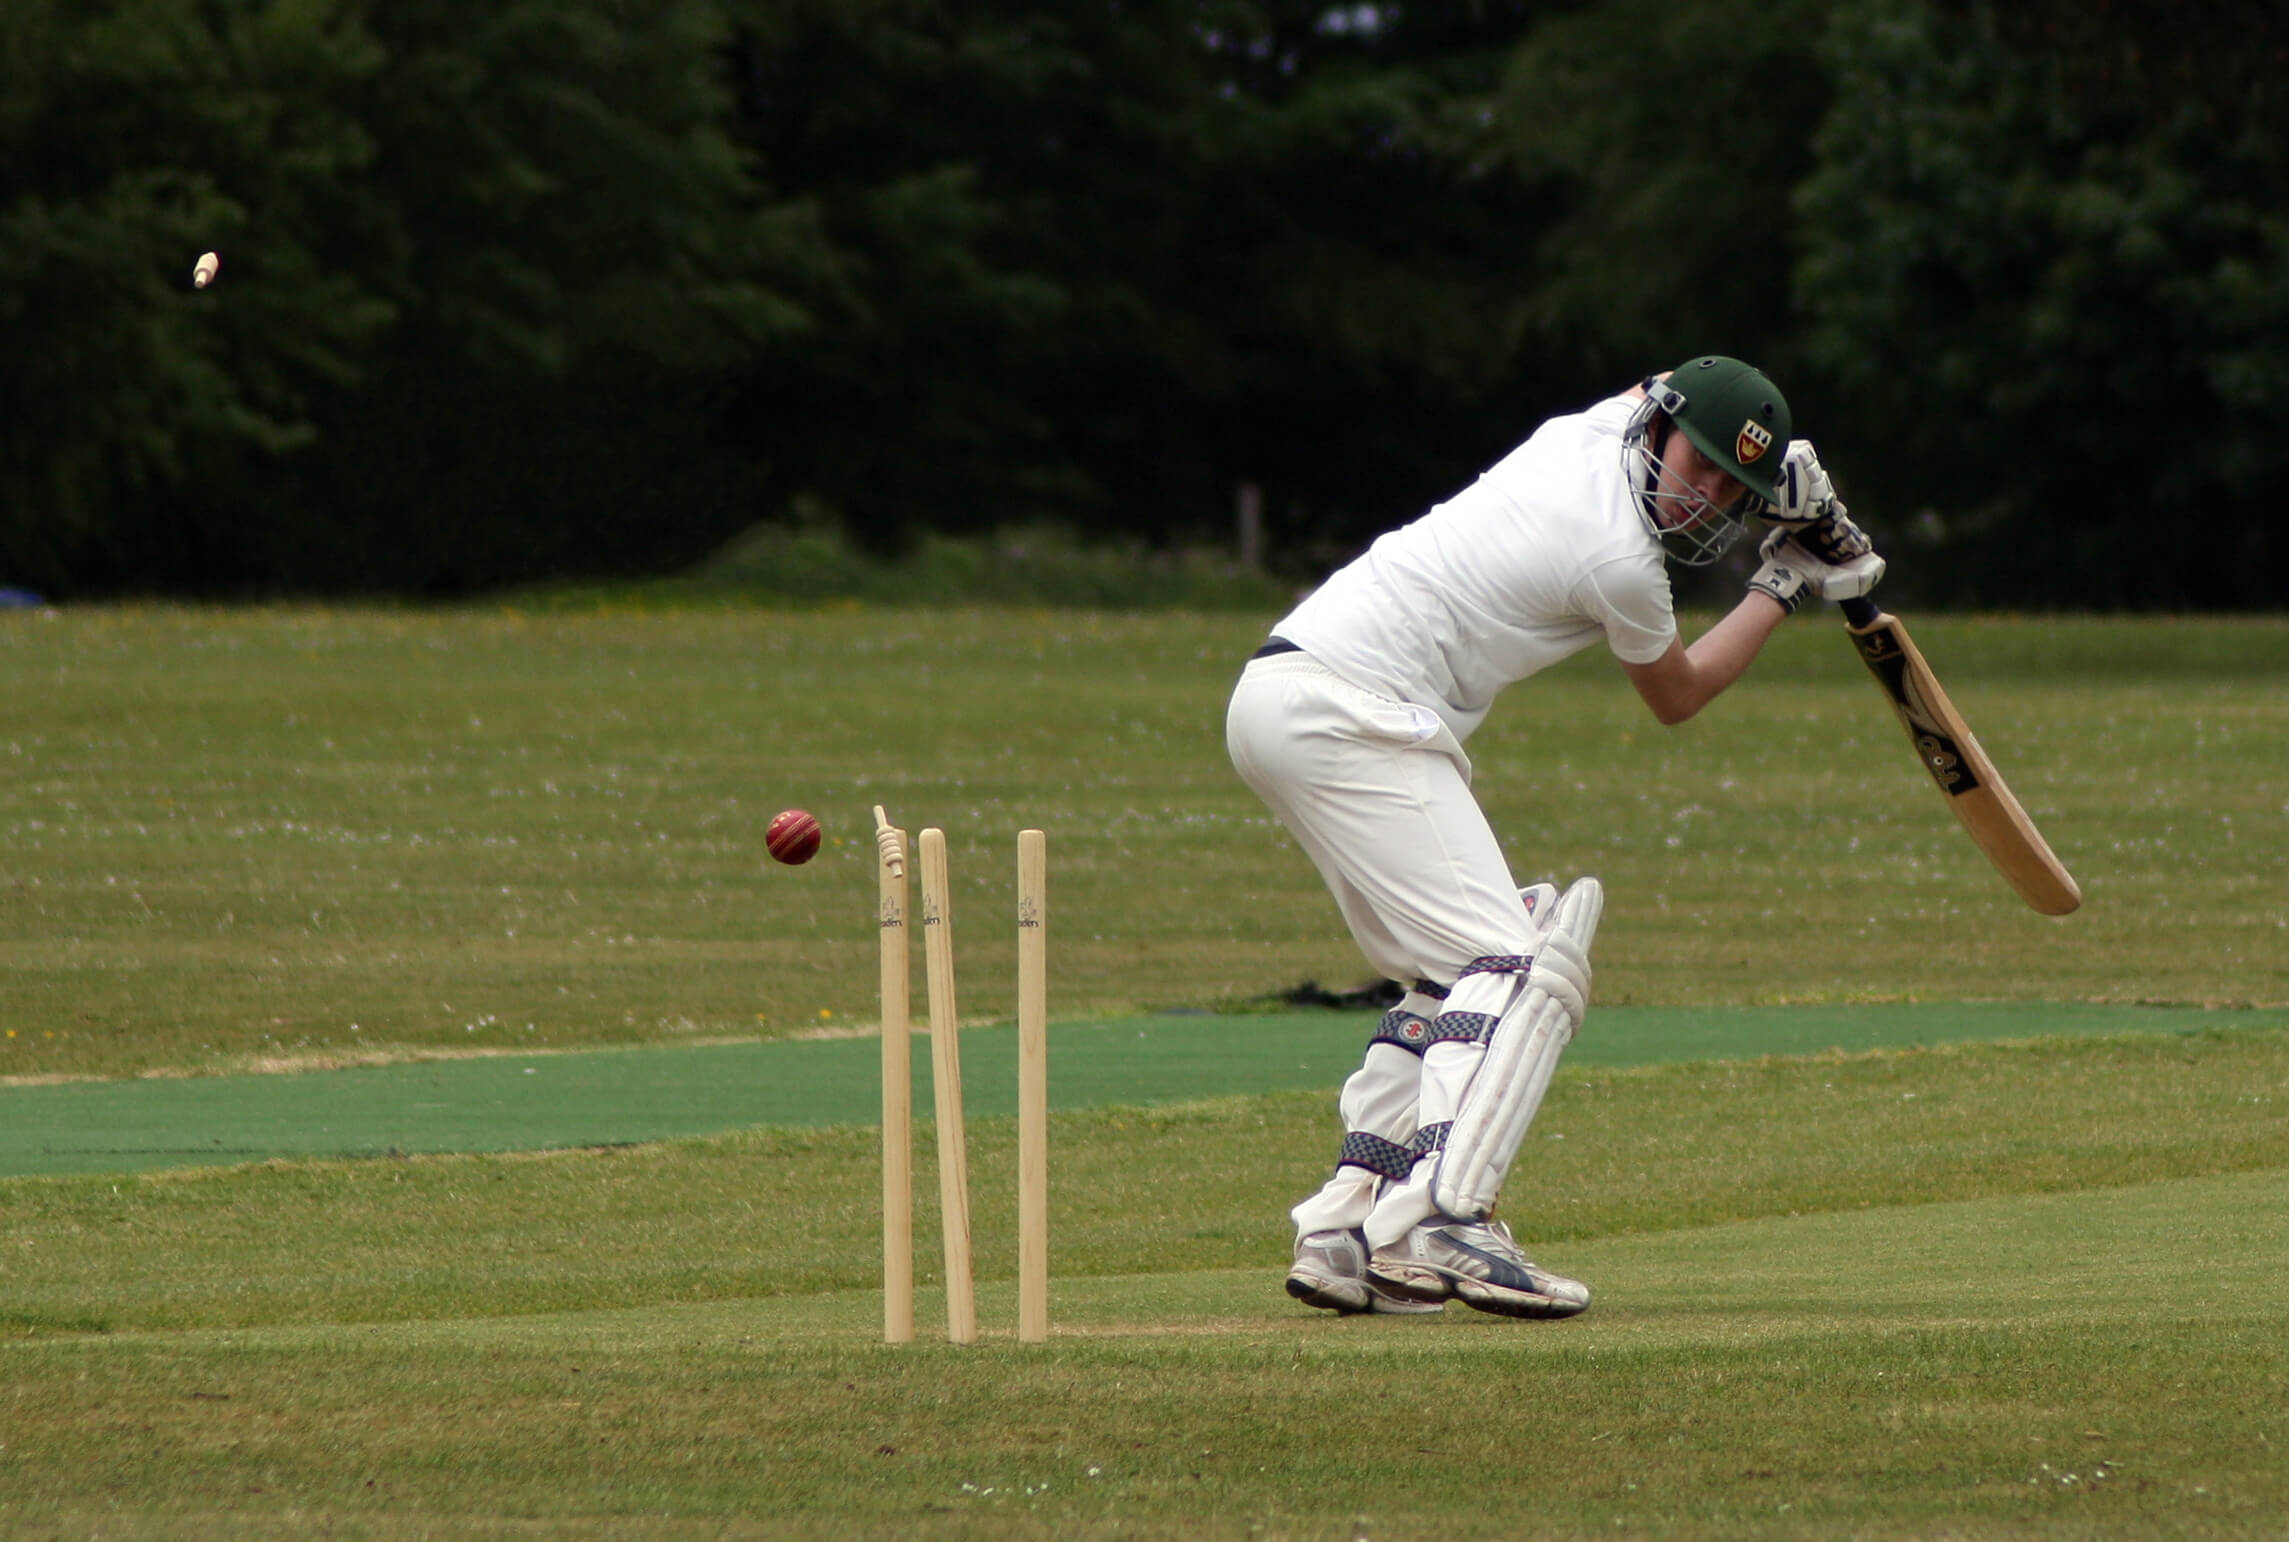 A player on a cricket tour bowled out